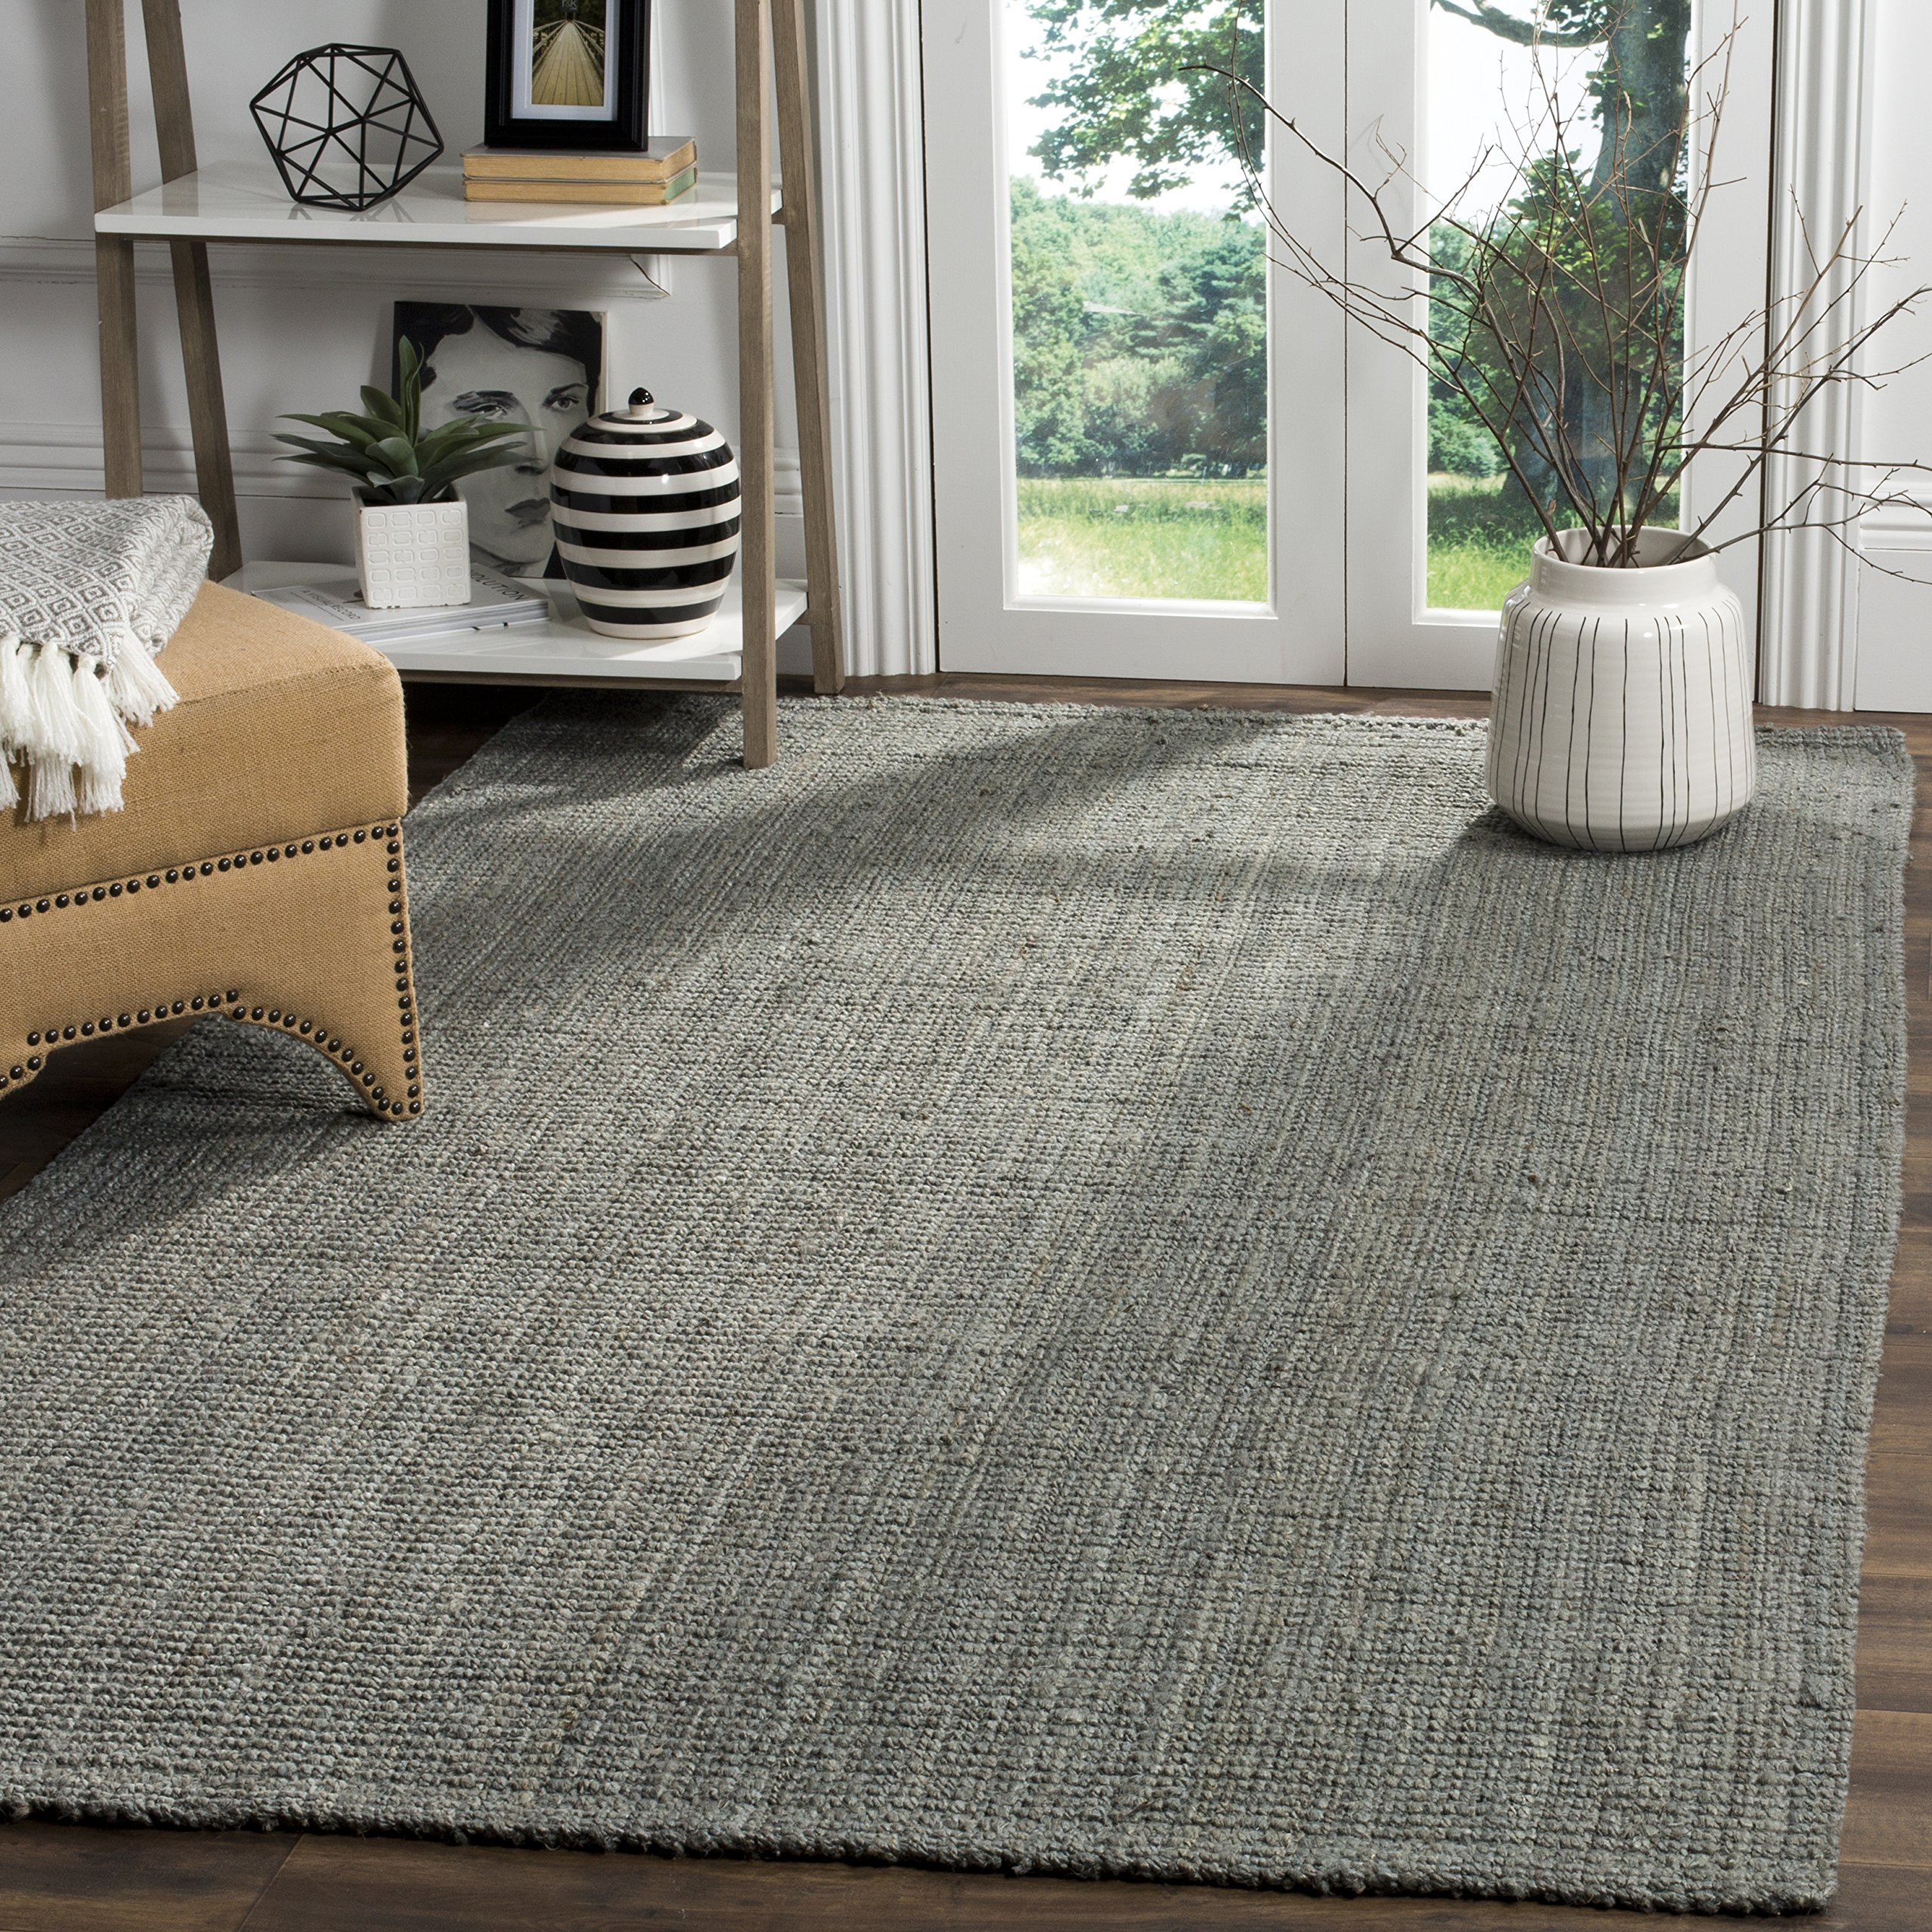 Safavieh Natural Fiber Collection NF730B Hand Woven Grey Jute Area Rug (9' x 12') by Safavieh